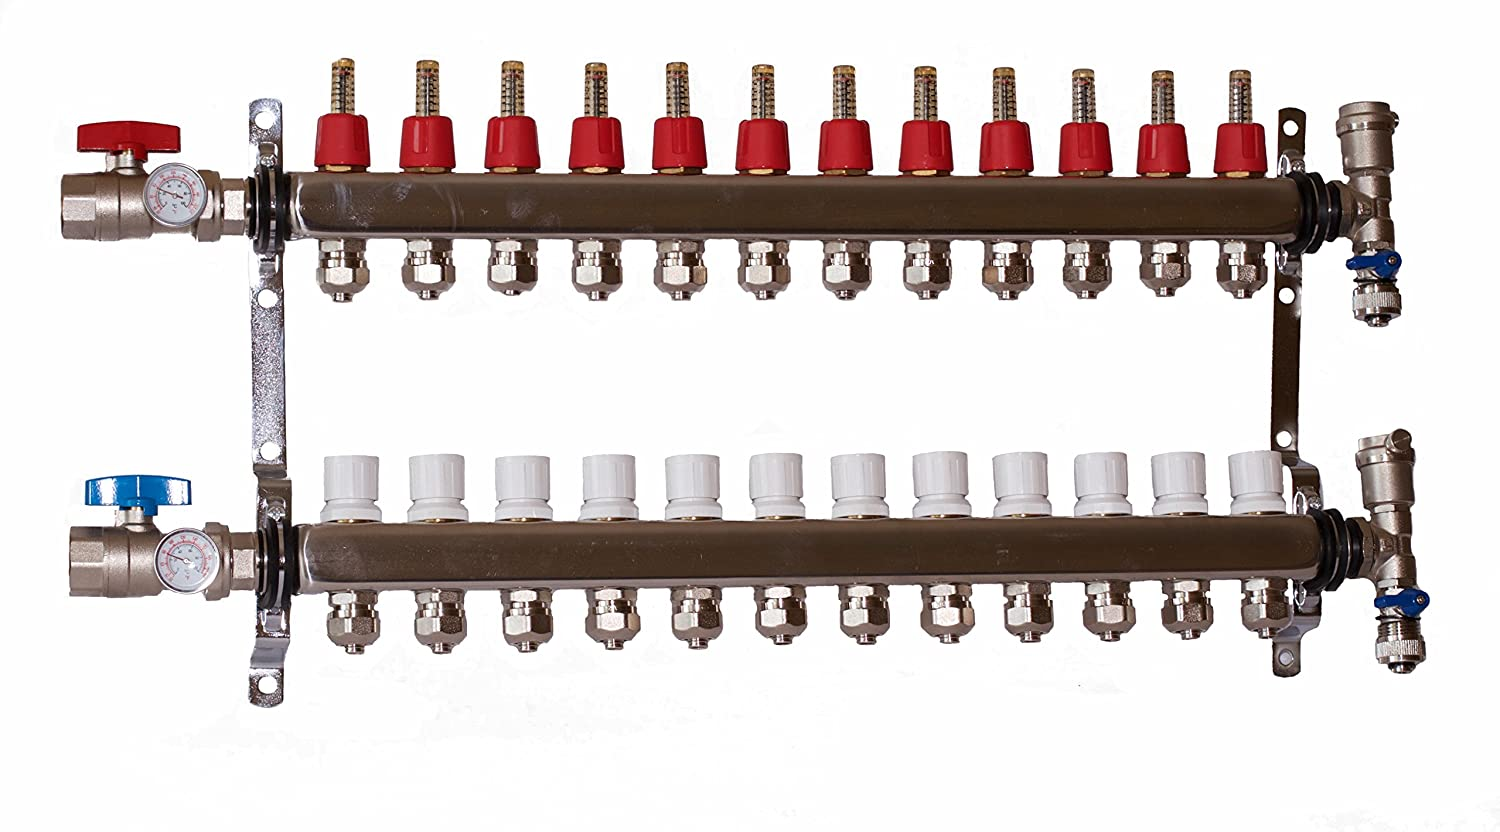 9 LOOP//BRANCH 1//2 PEX MANIFOLD WITH BALL VALVE STAINLESS STEEL RADIANT HEATING